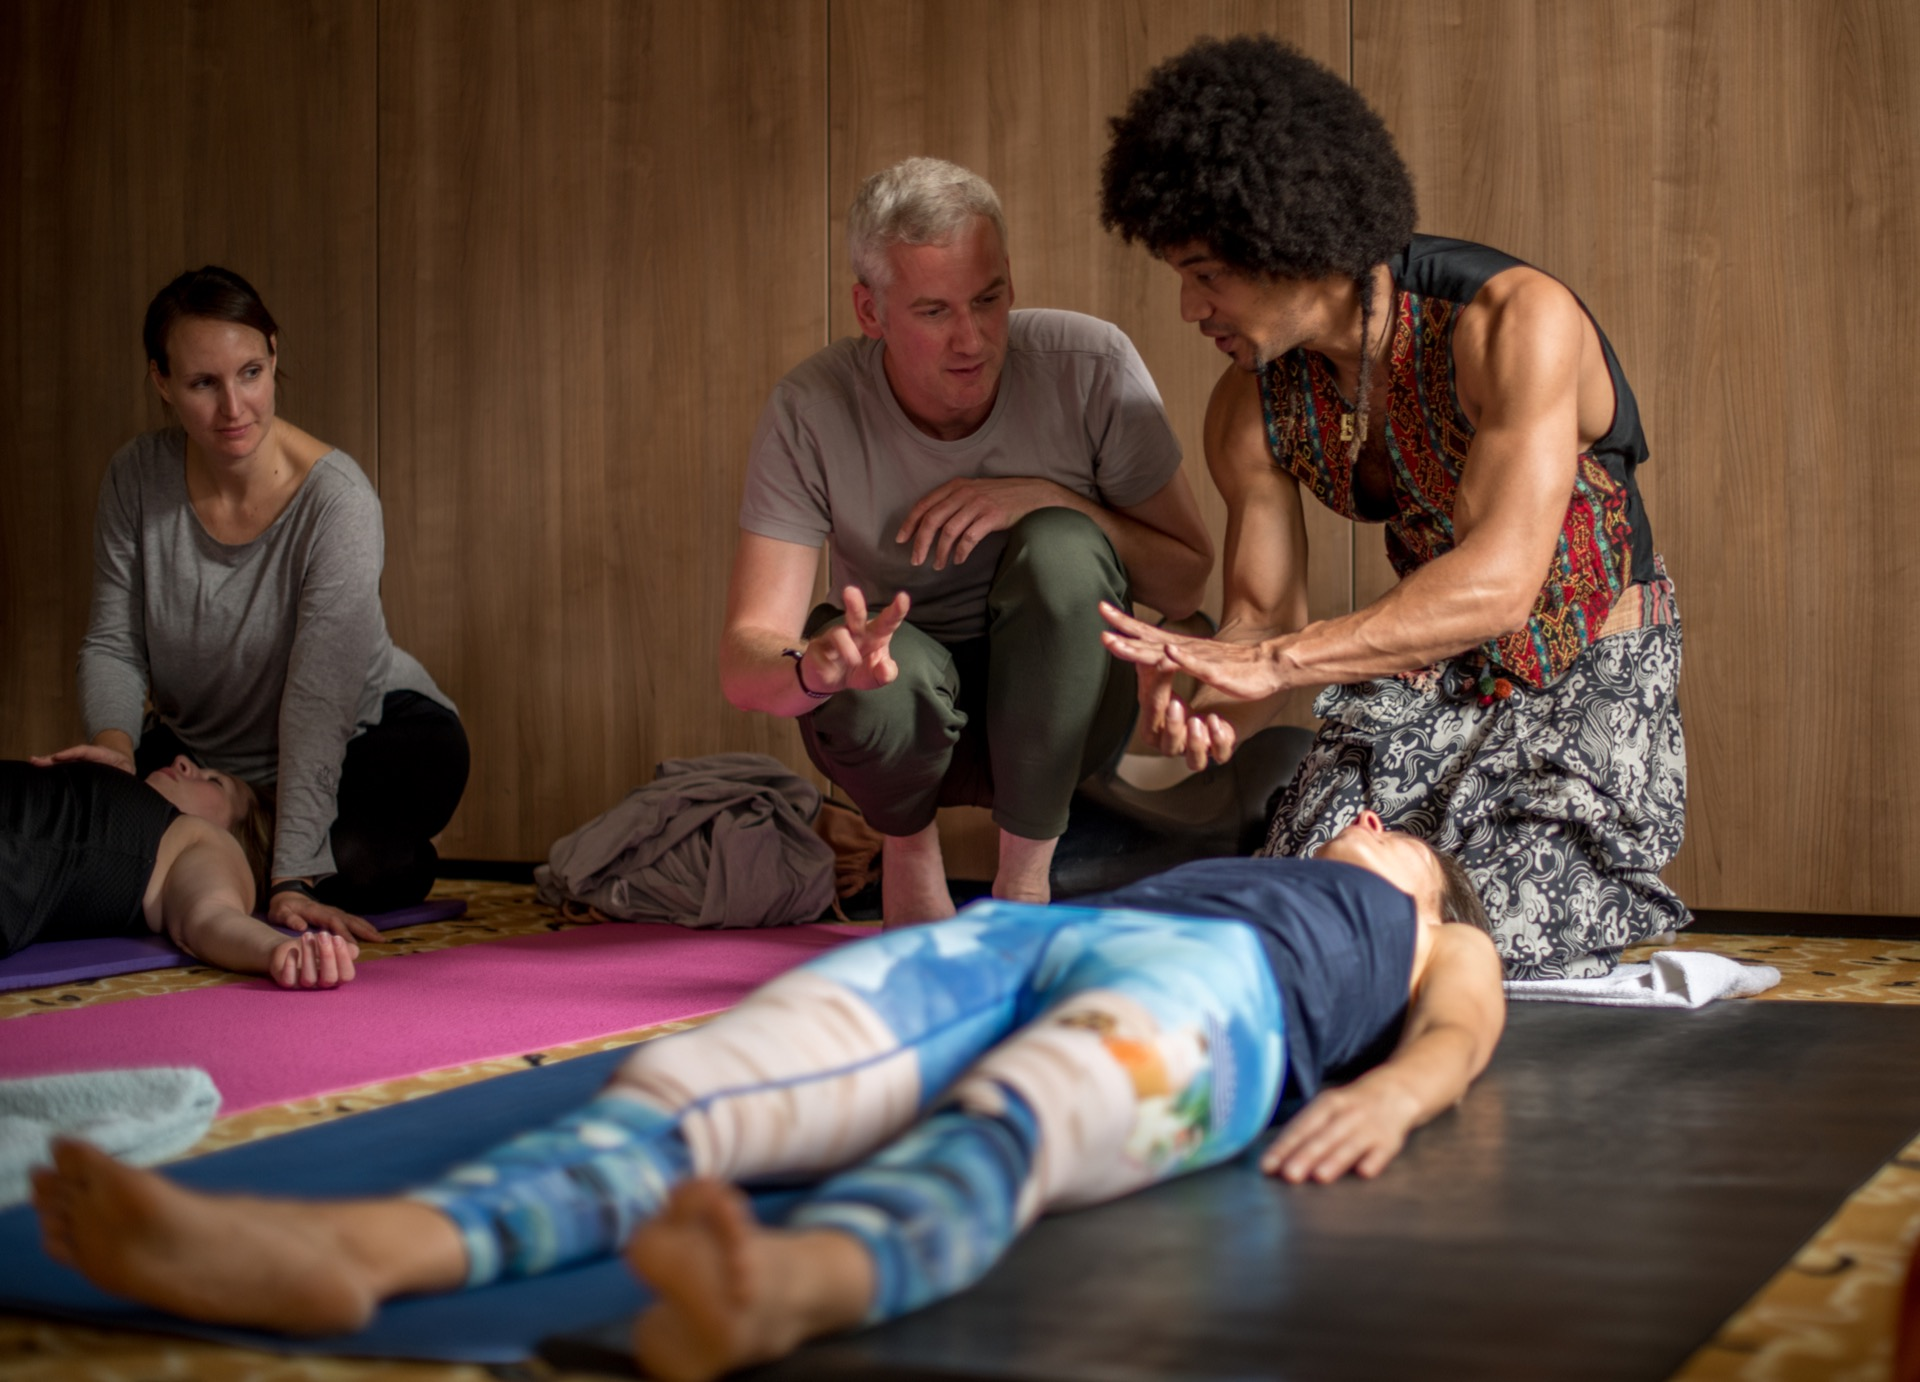 Hie-Kim-Friends-2019-Yoga-Retreat-Alina-Matis-Photography-156 - Hie Kim Yoga - Yoga Retreat - Yoga Workshops und Reisen